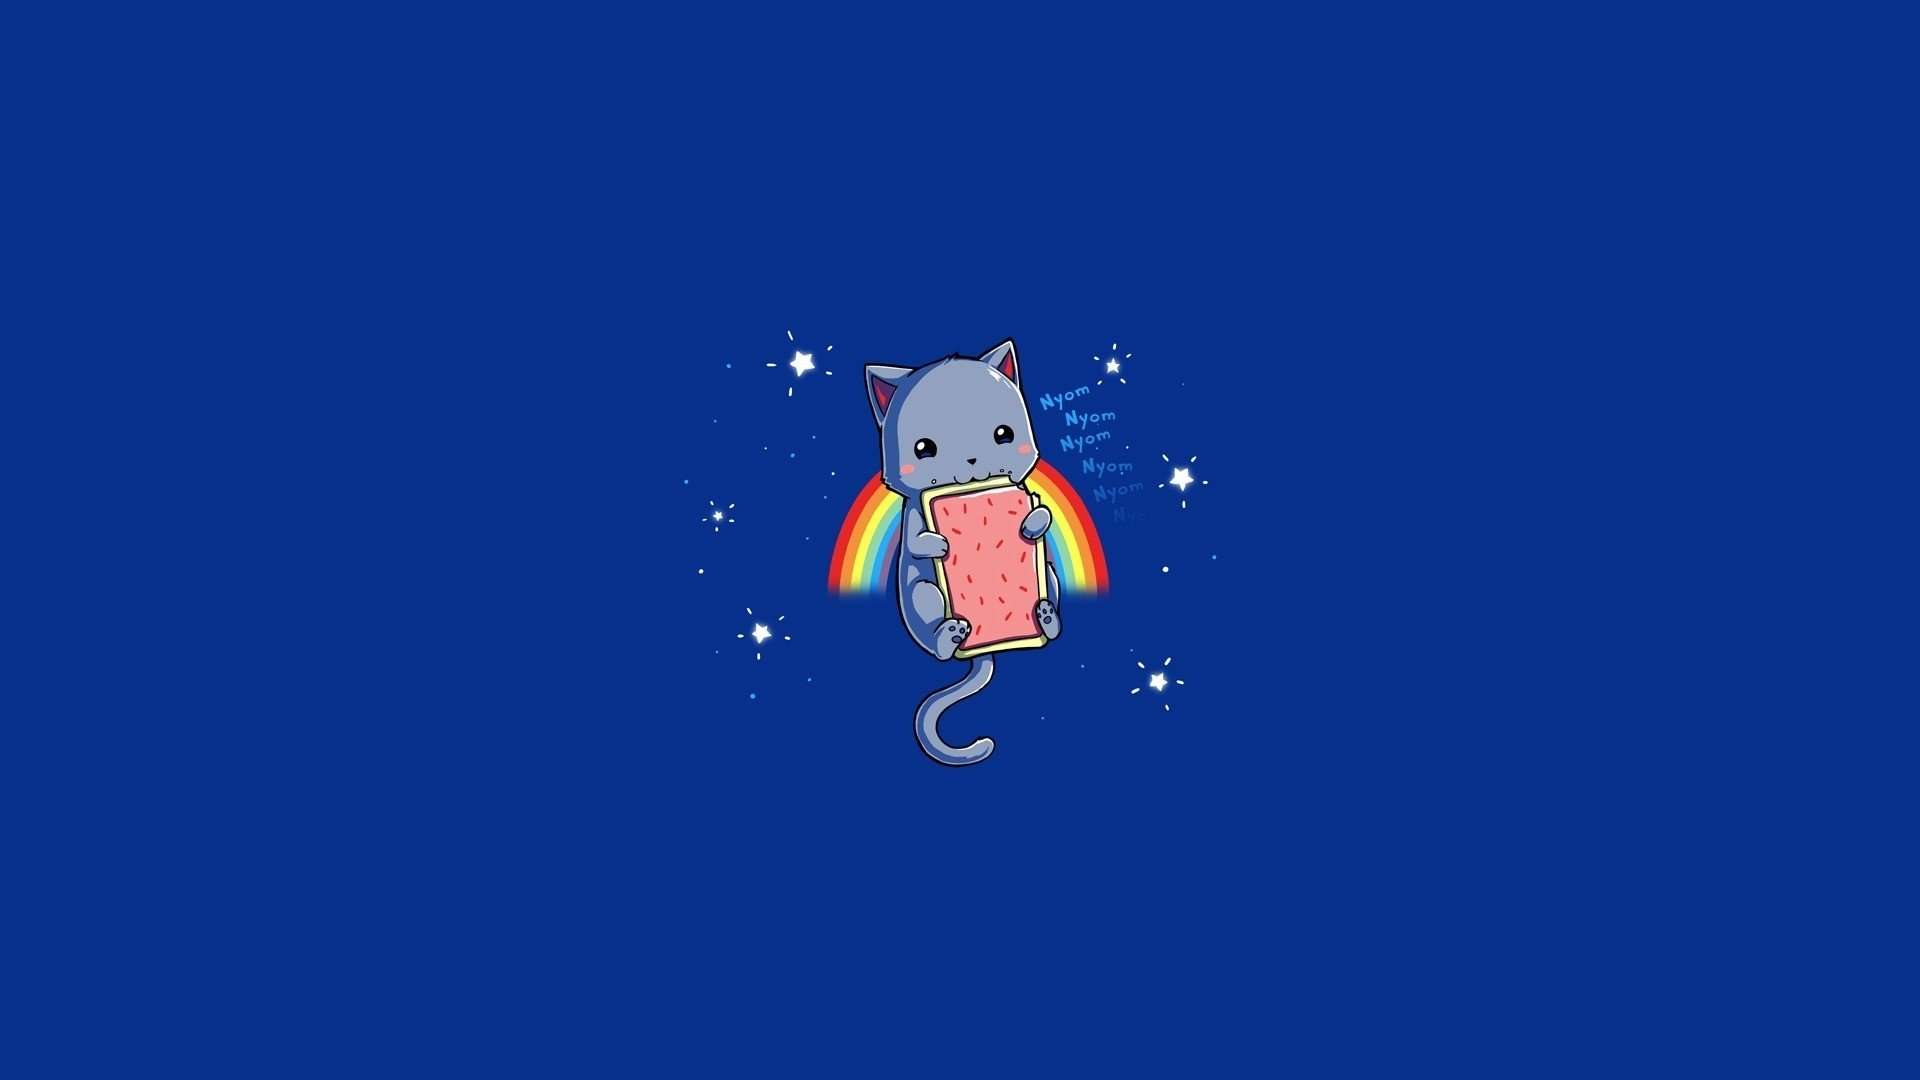 4 Nyan Cat HD Wallpapers | Backgrounds - Wallpaper Abyss